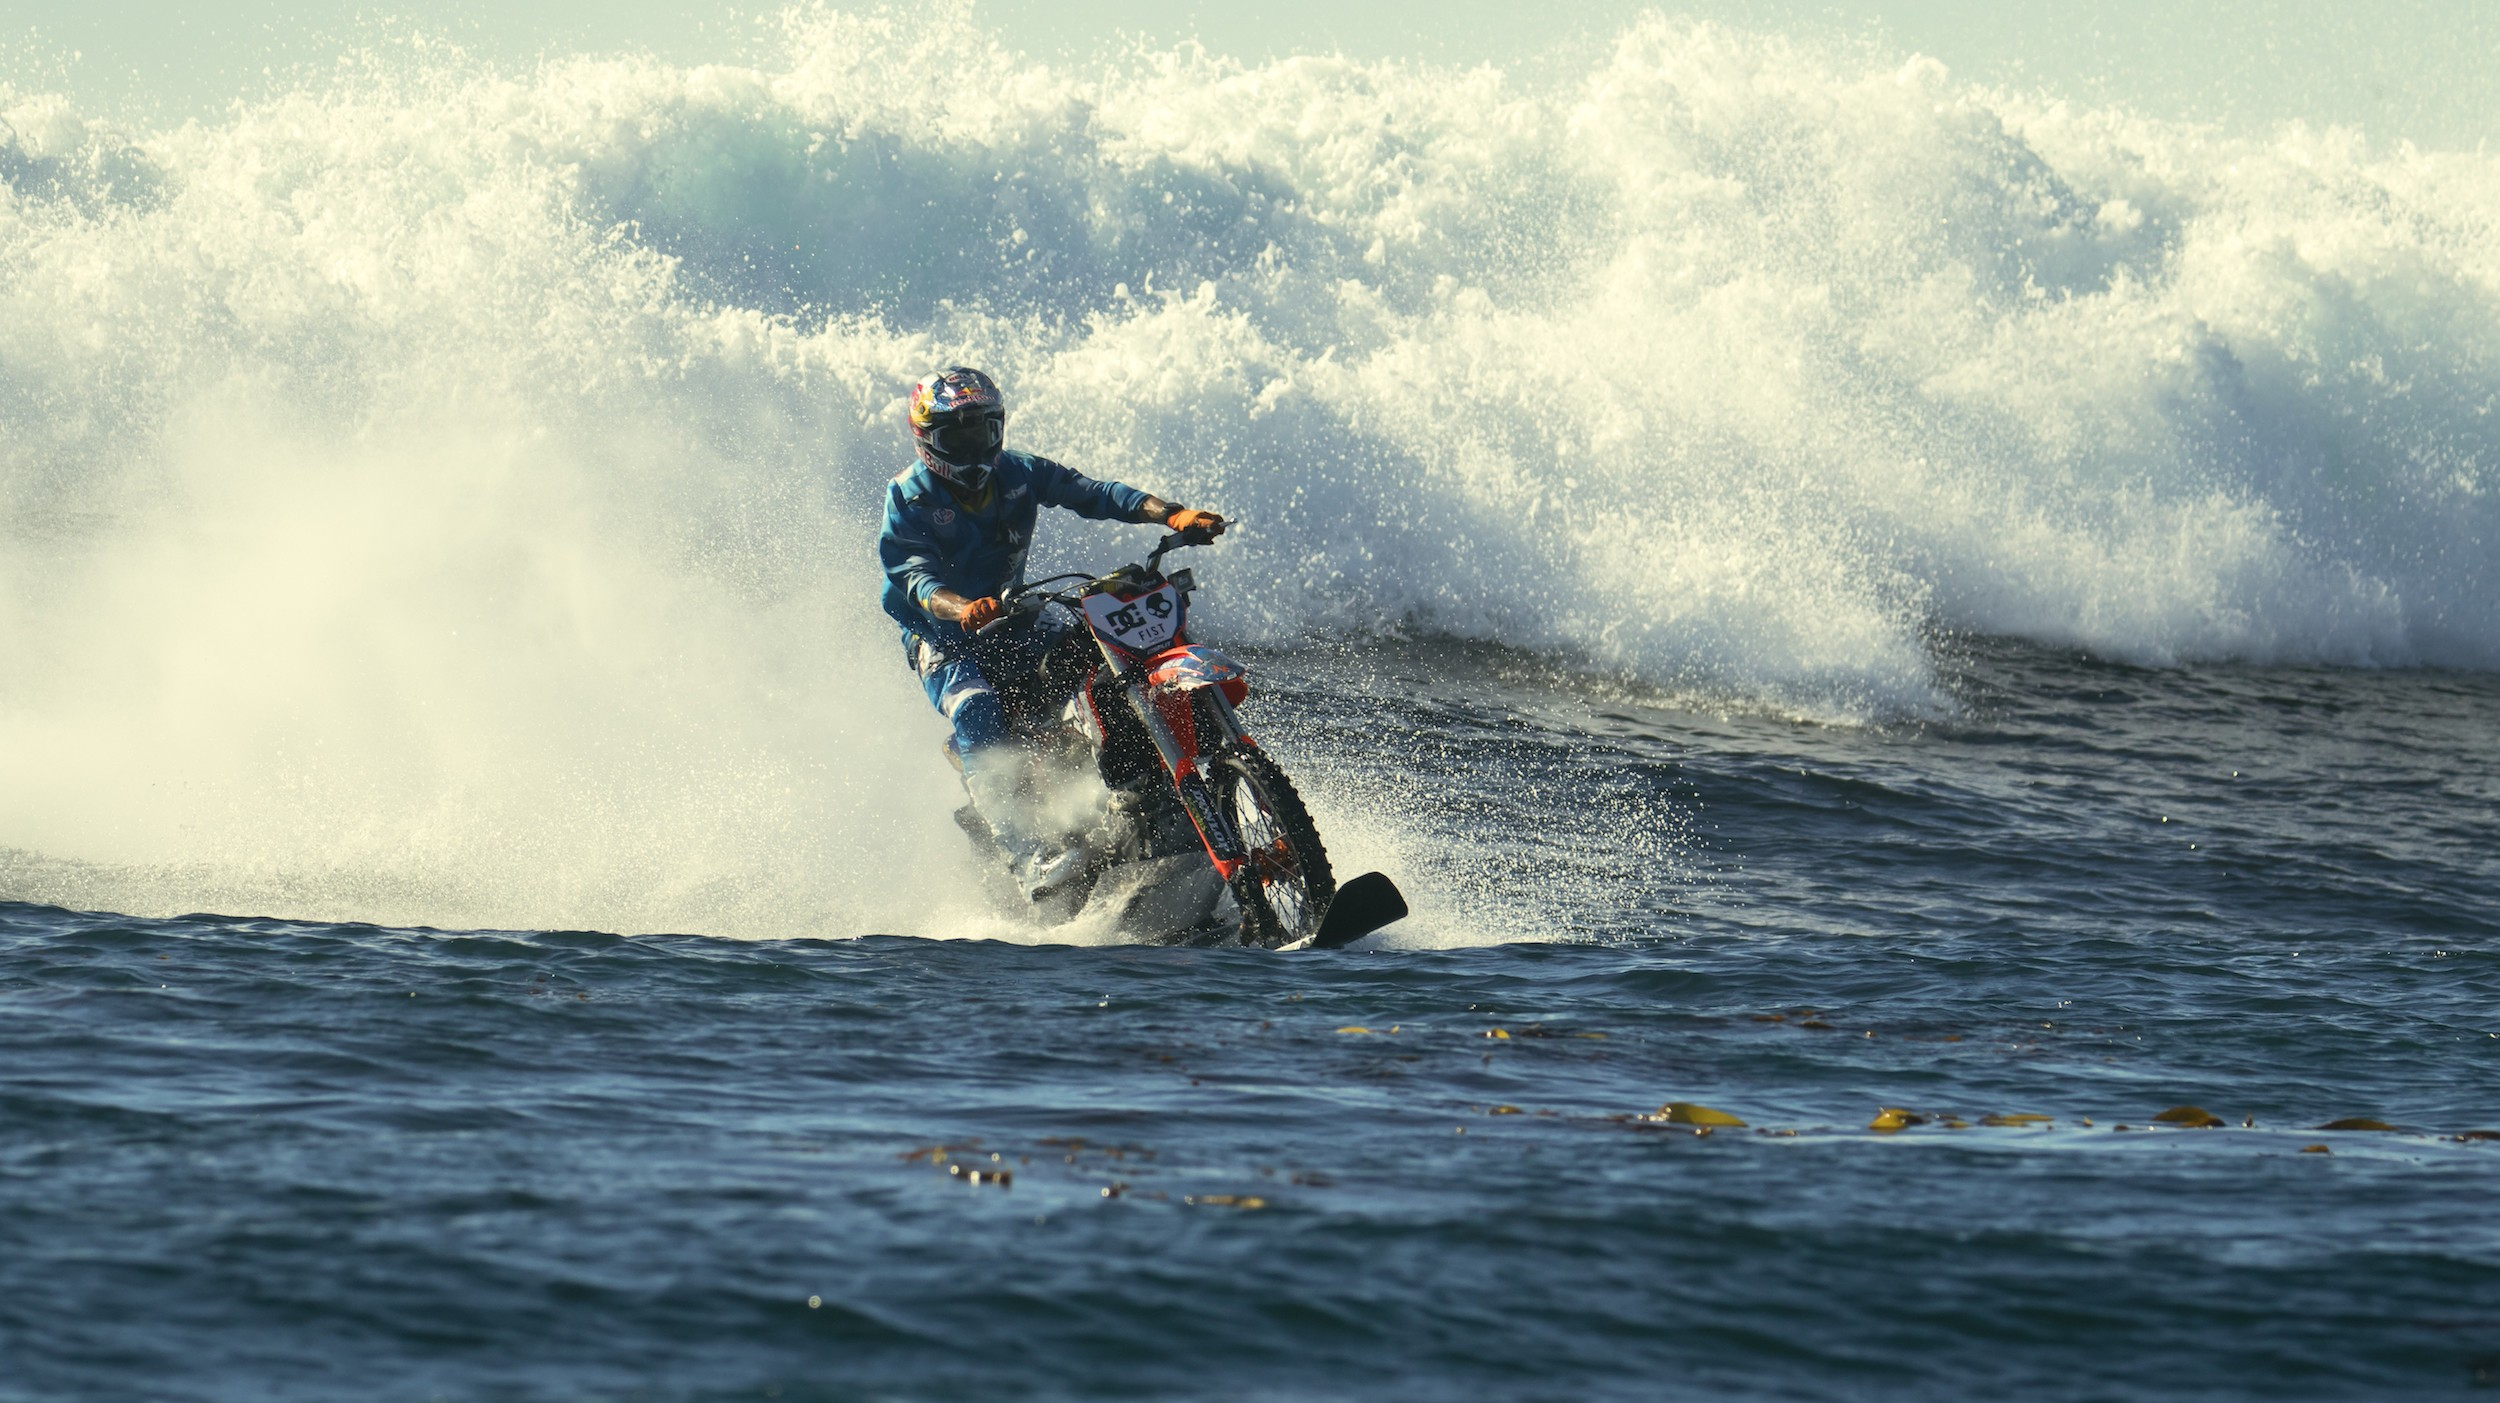 Pipe Dream 2: Robbie Maddison's Journey to Ride the World's Biggest Waves, in Partnership with Samsung